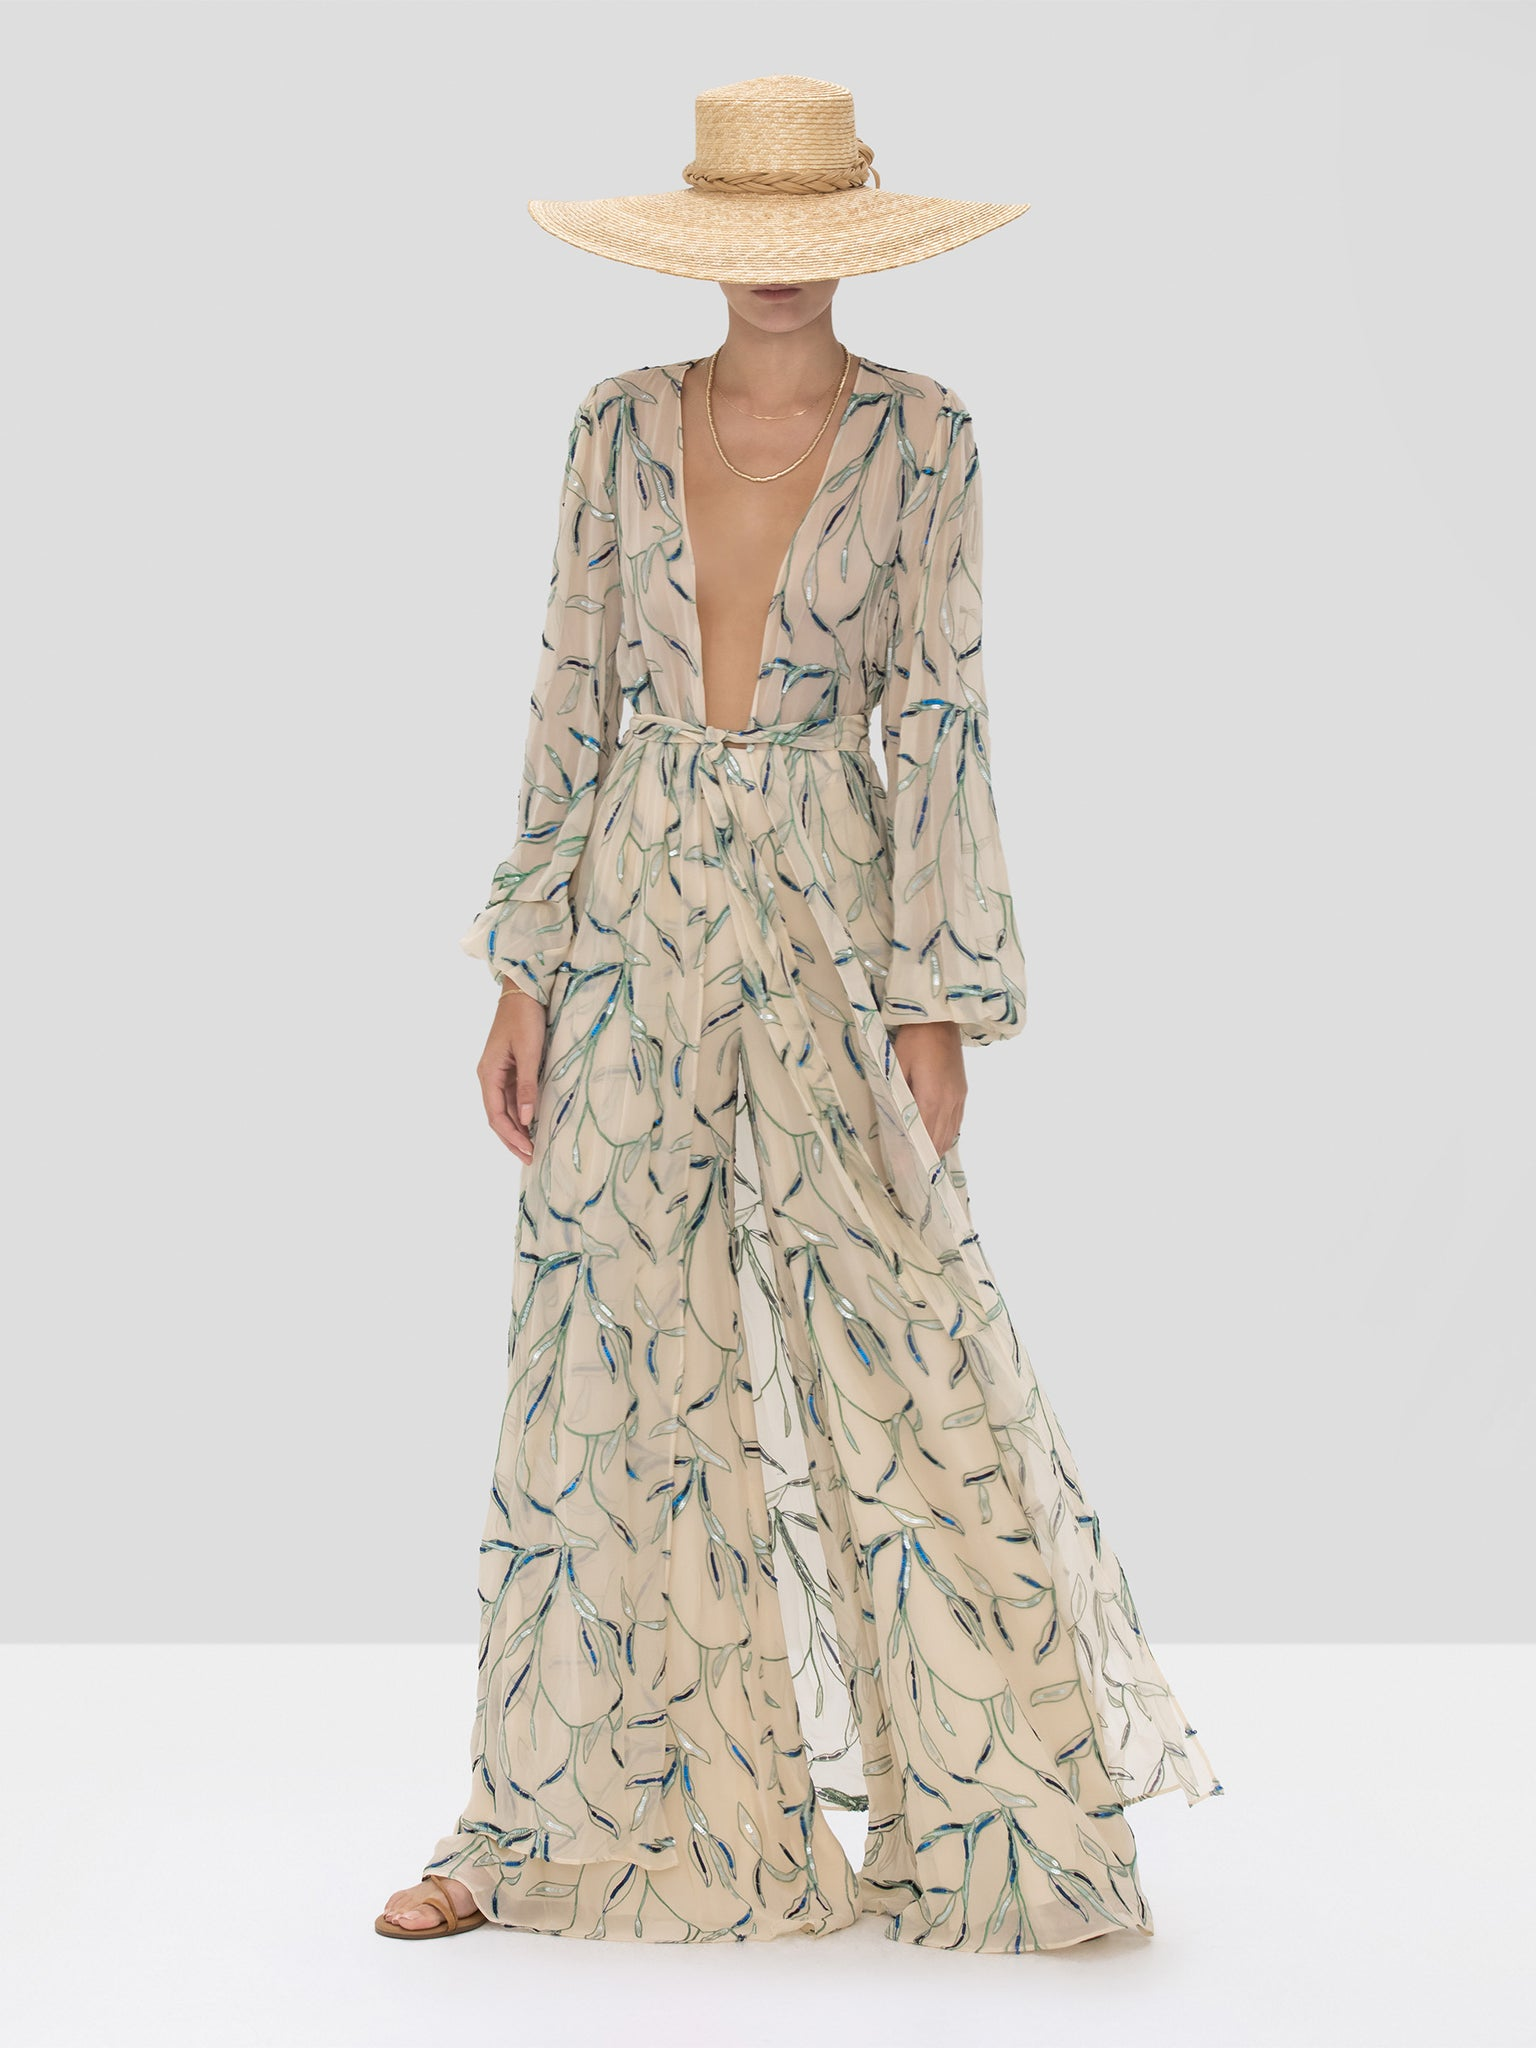 Alexis Fallen Pant and Amaia Kaftan in Tan Sequin Embroidery from the Spring Summer 2020 Collection